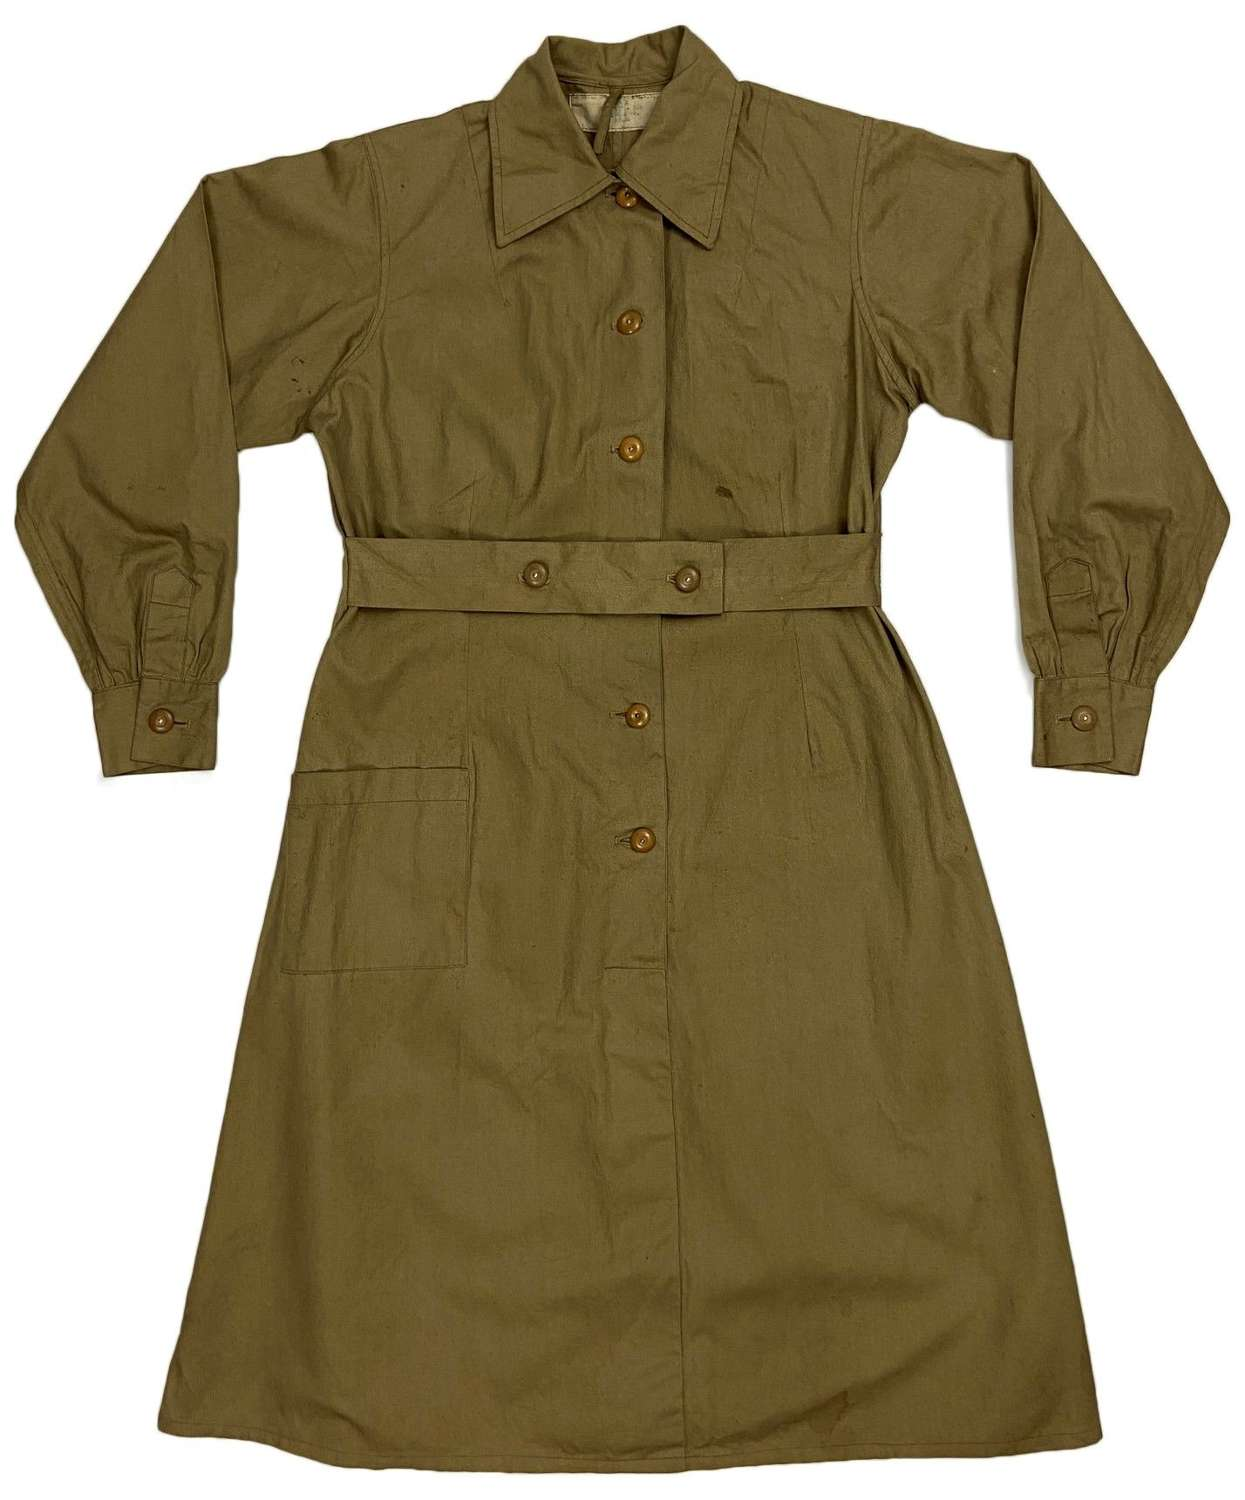 Original 1942 Dated ATS Overalls - Size 2